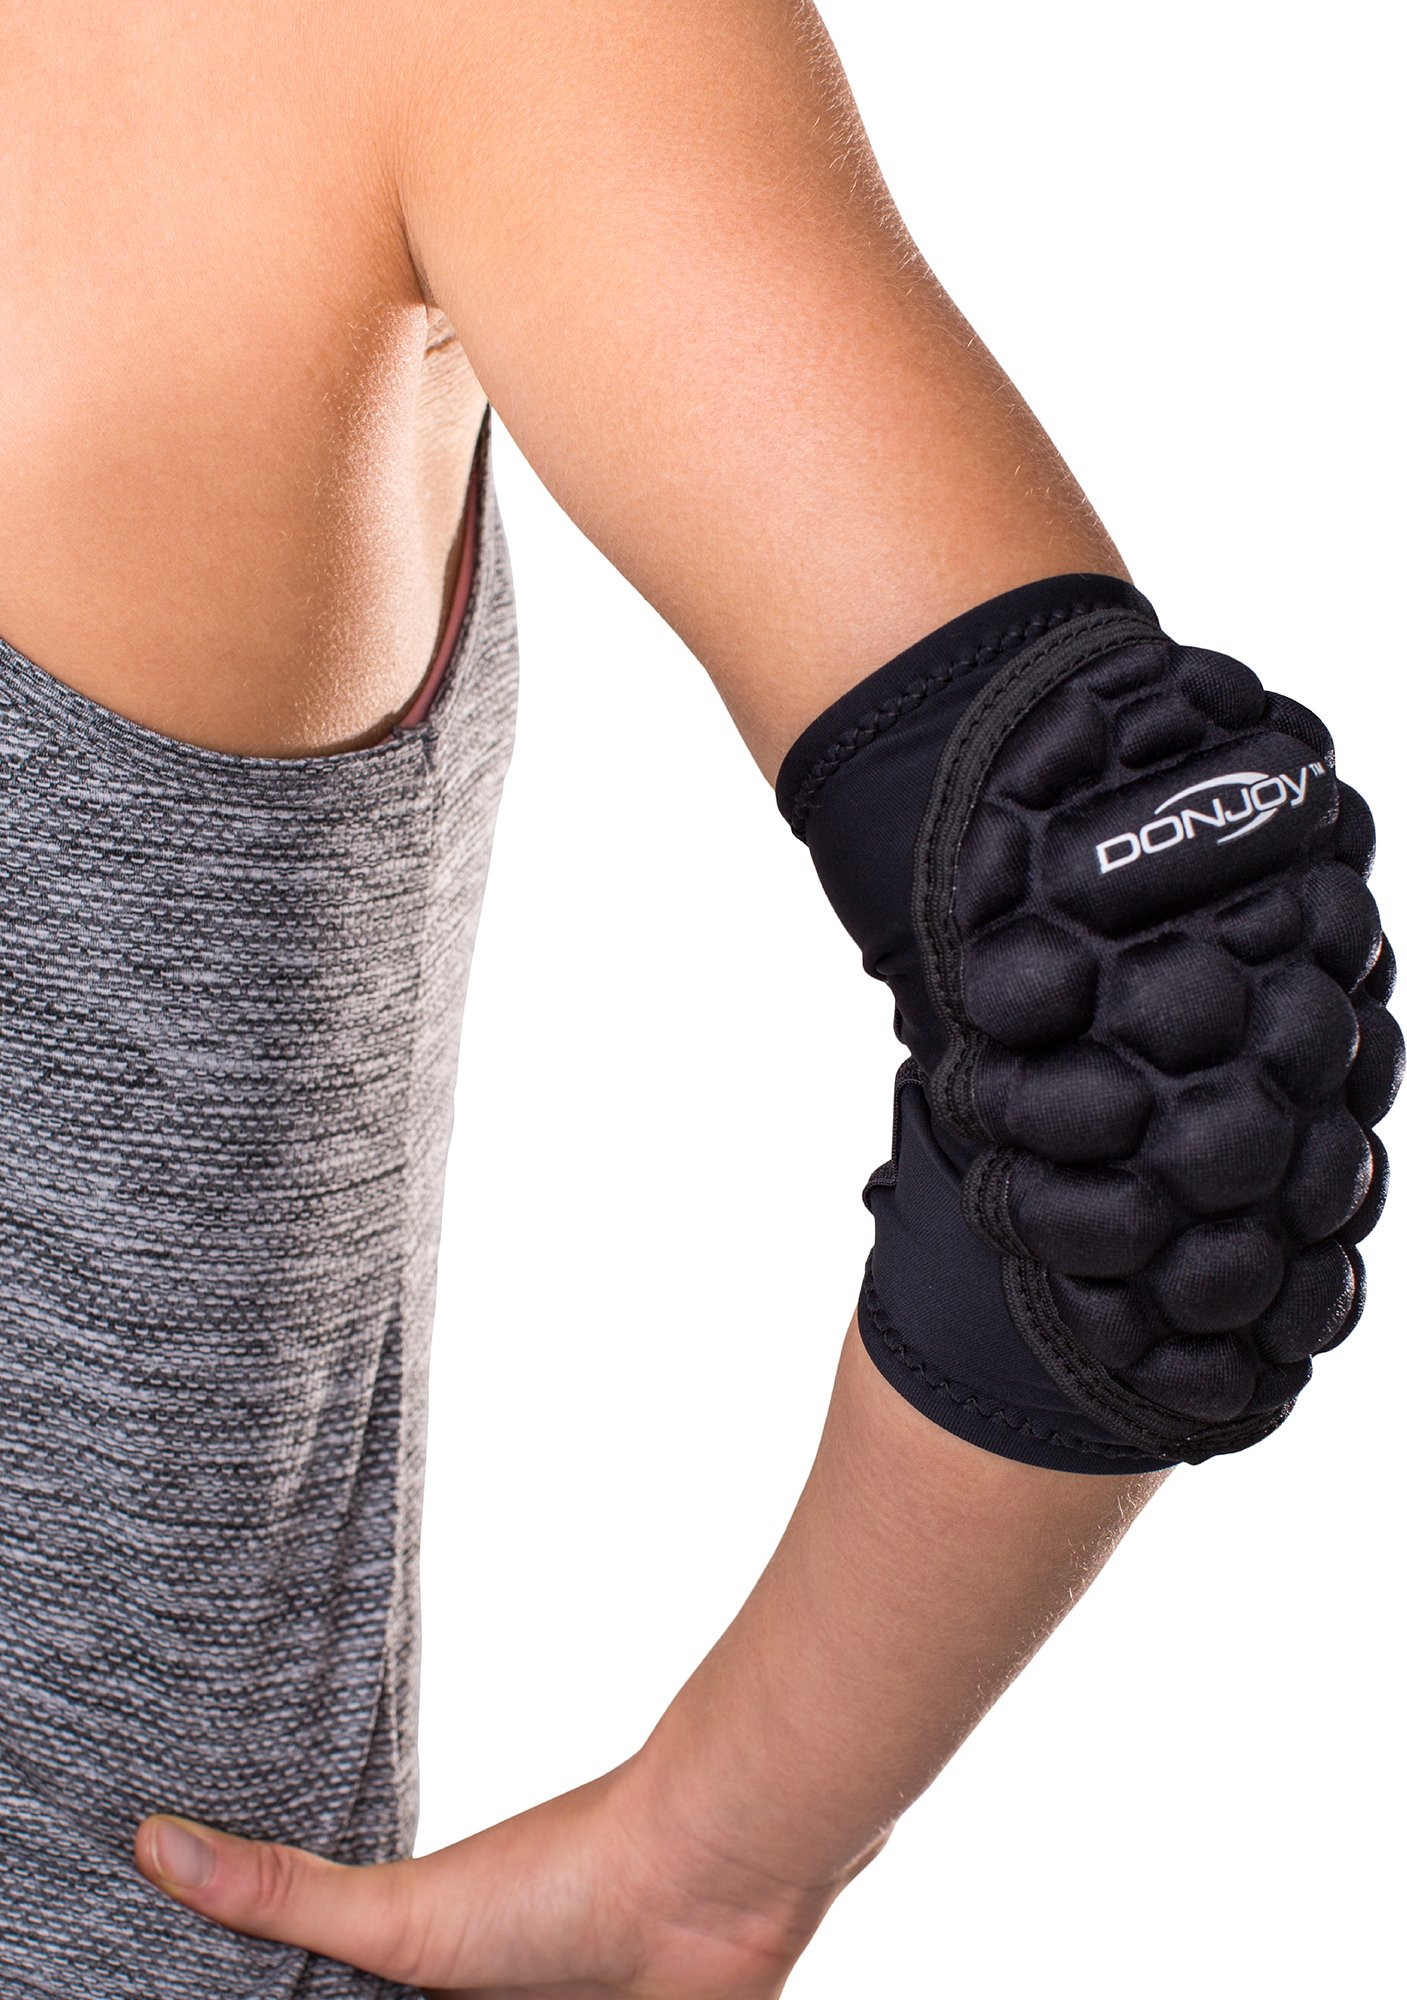 DonJoy Spider Elbow Pad Sleeve, X-Large by DonJoy